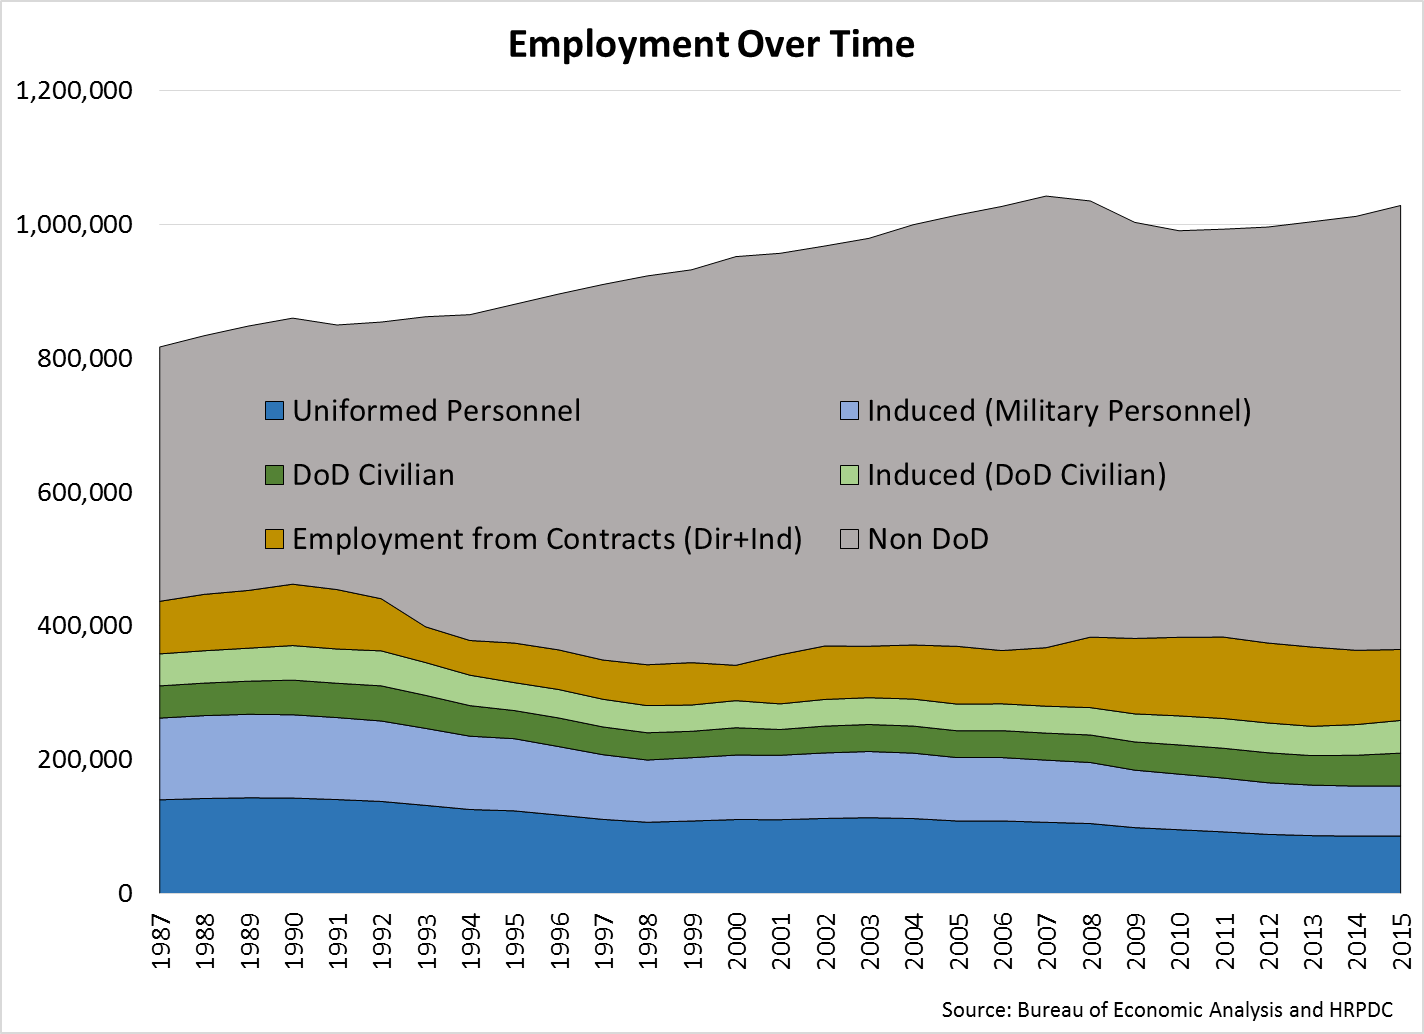 Employment Over Time